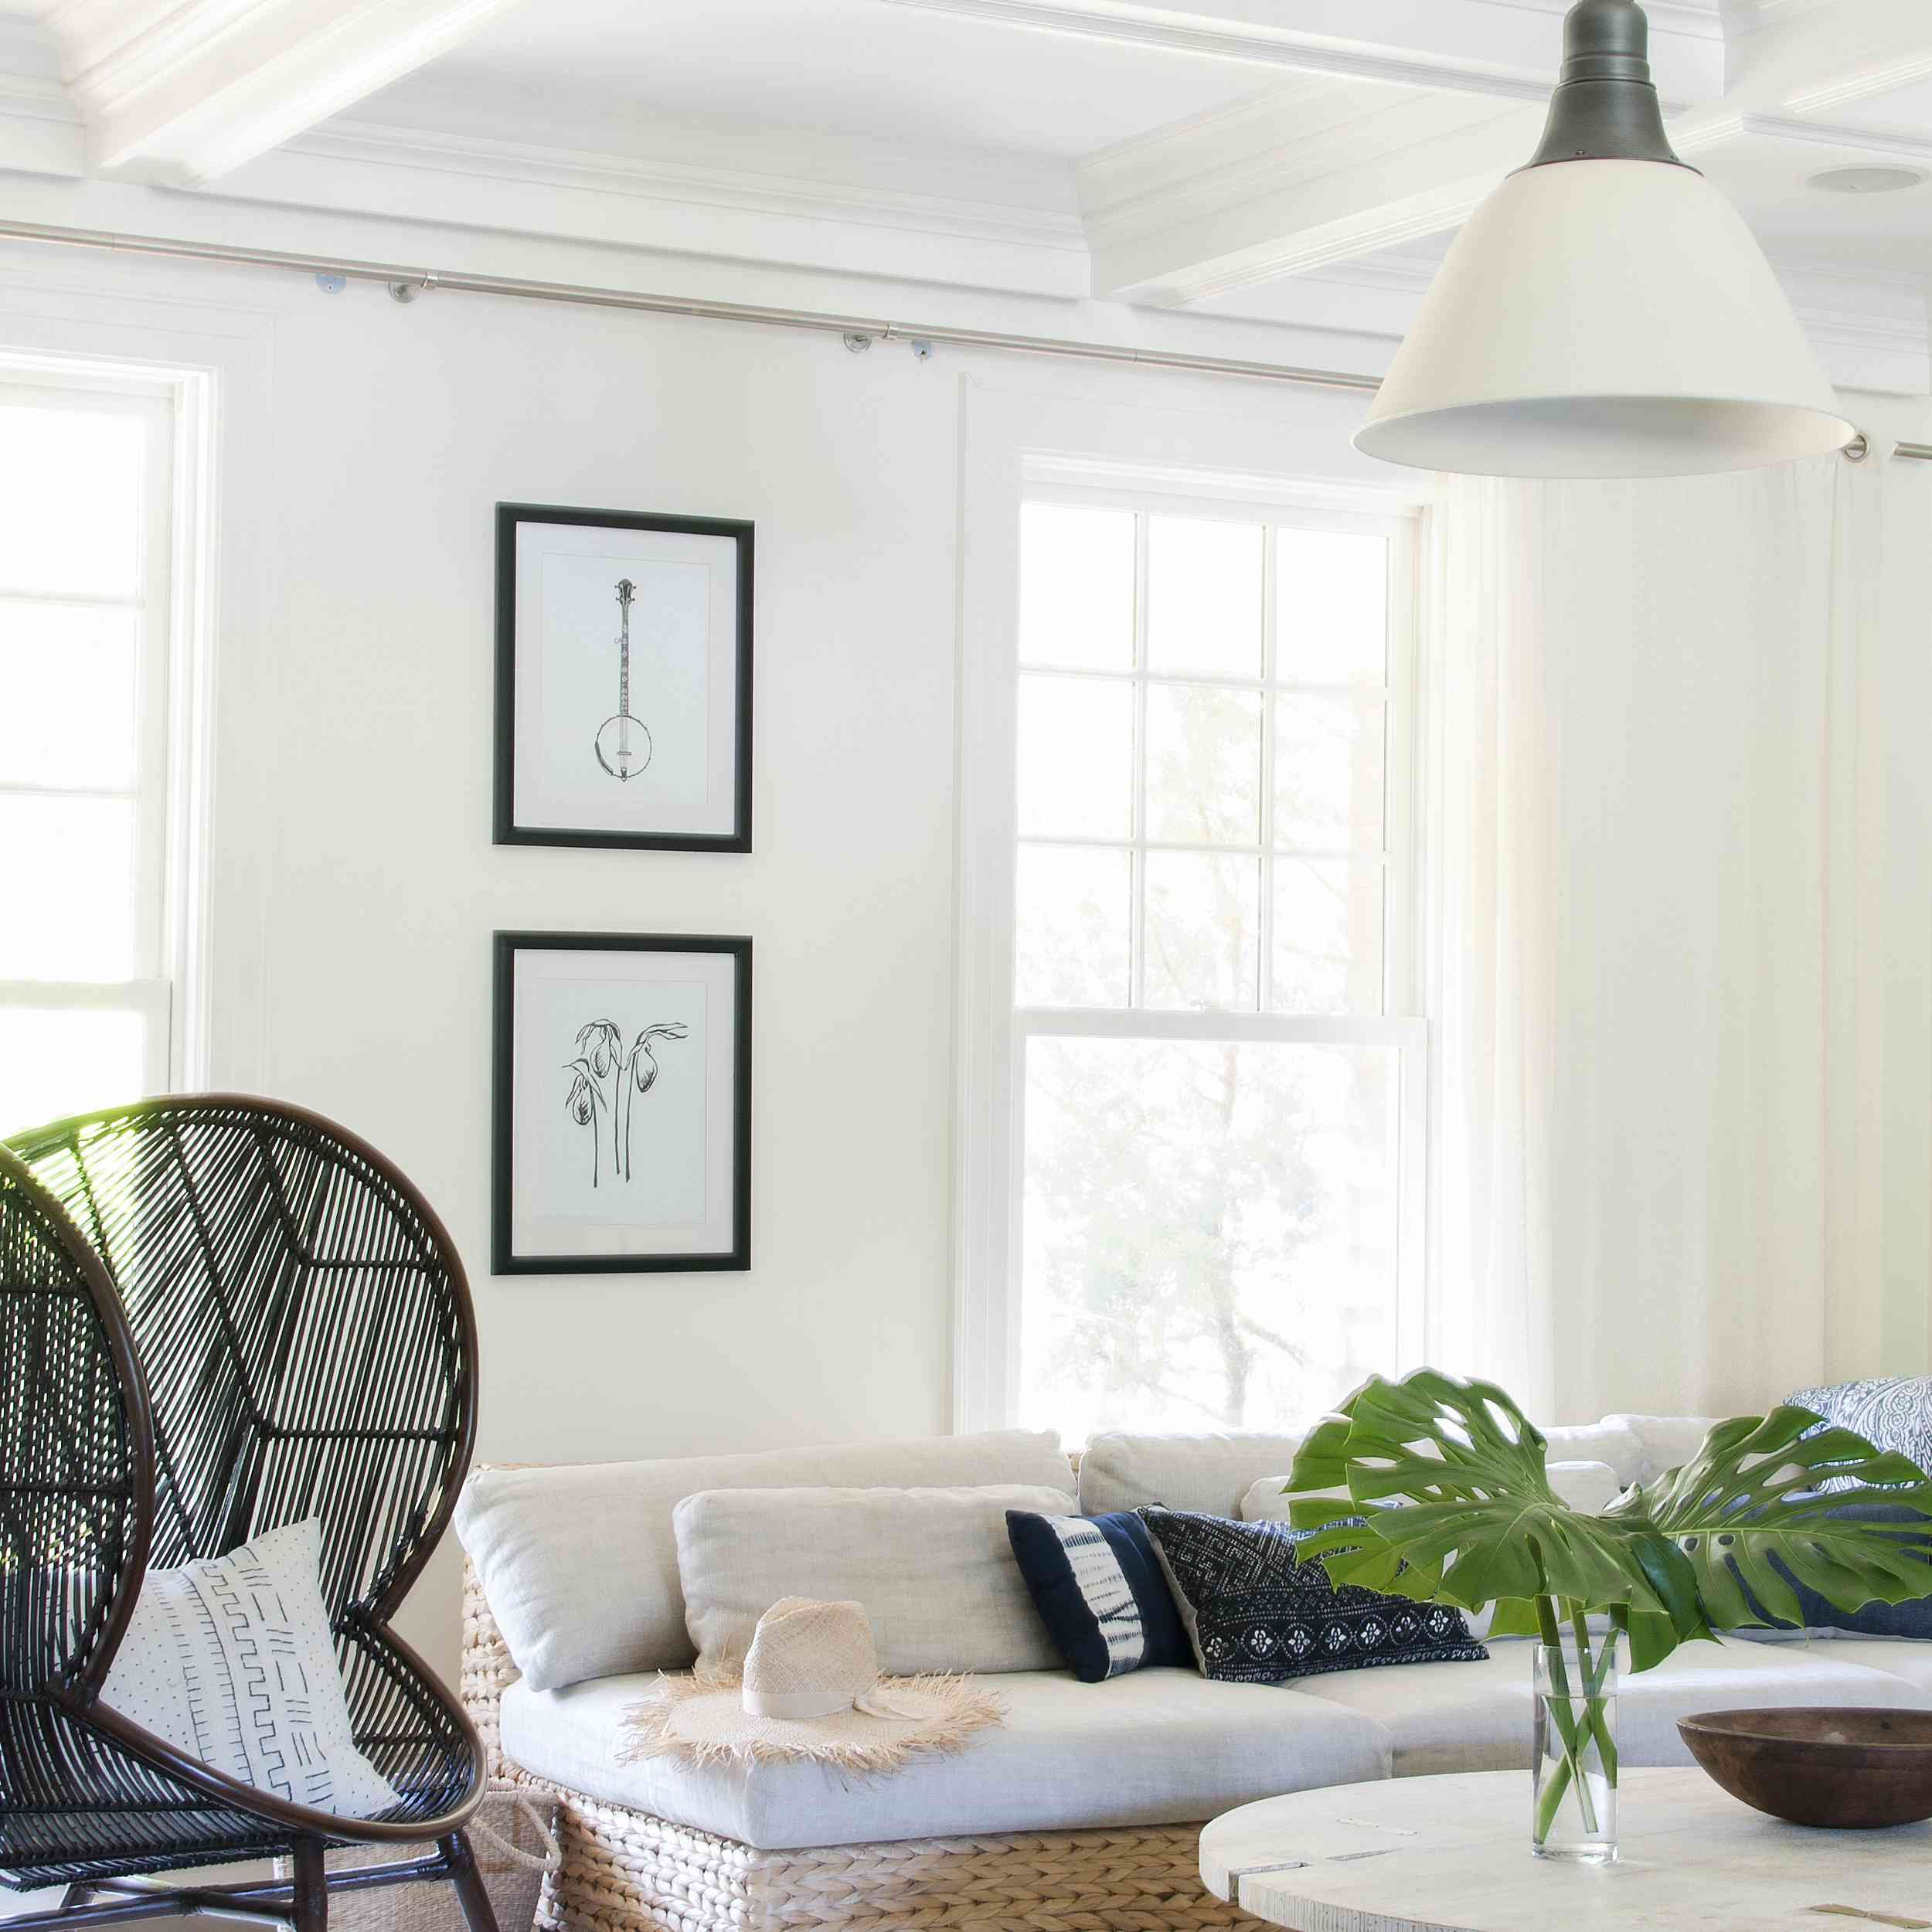 Modern boho chic living room with natural accents